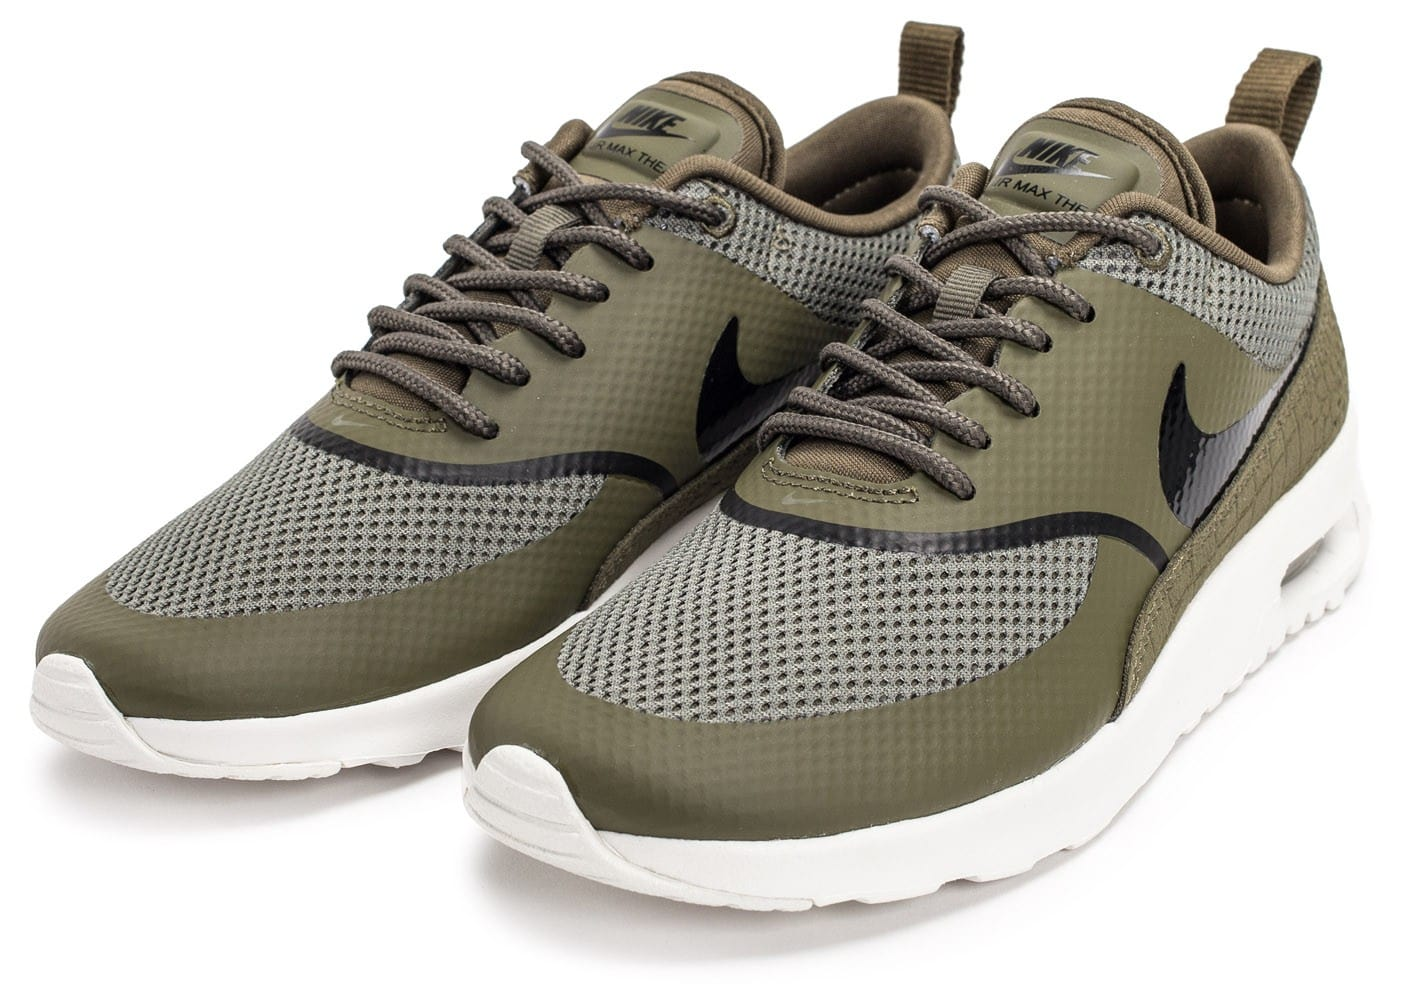 pretty nice bec50 fa8bc Femme Chausport Nike Olive Baskets Chaussures Air Zx7qw6e Max Thea  RTwZCqnfZ.